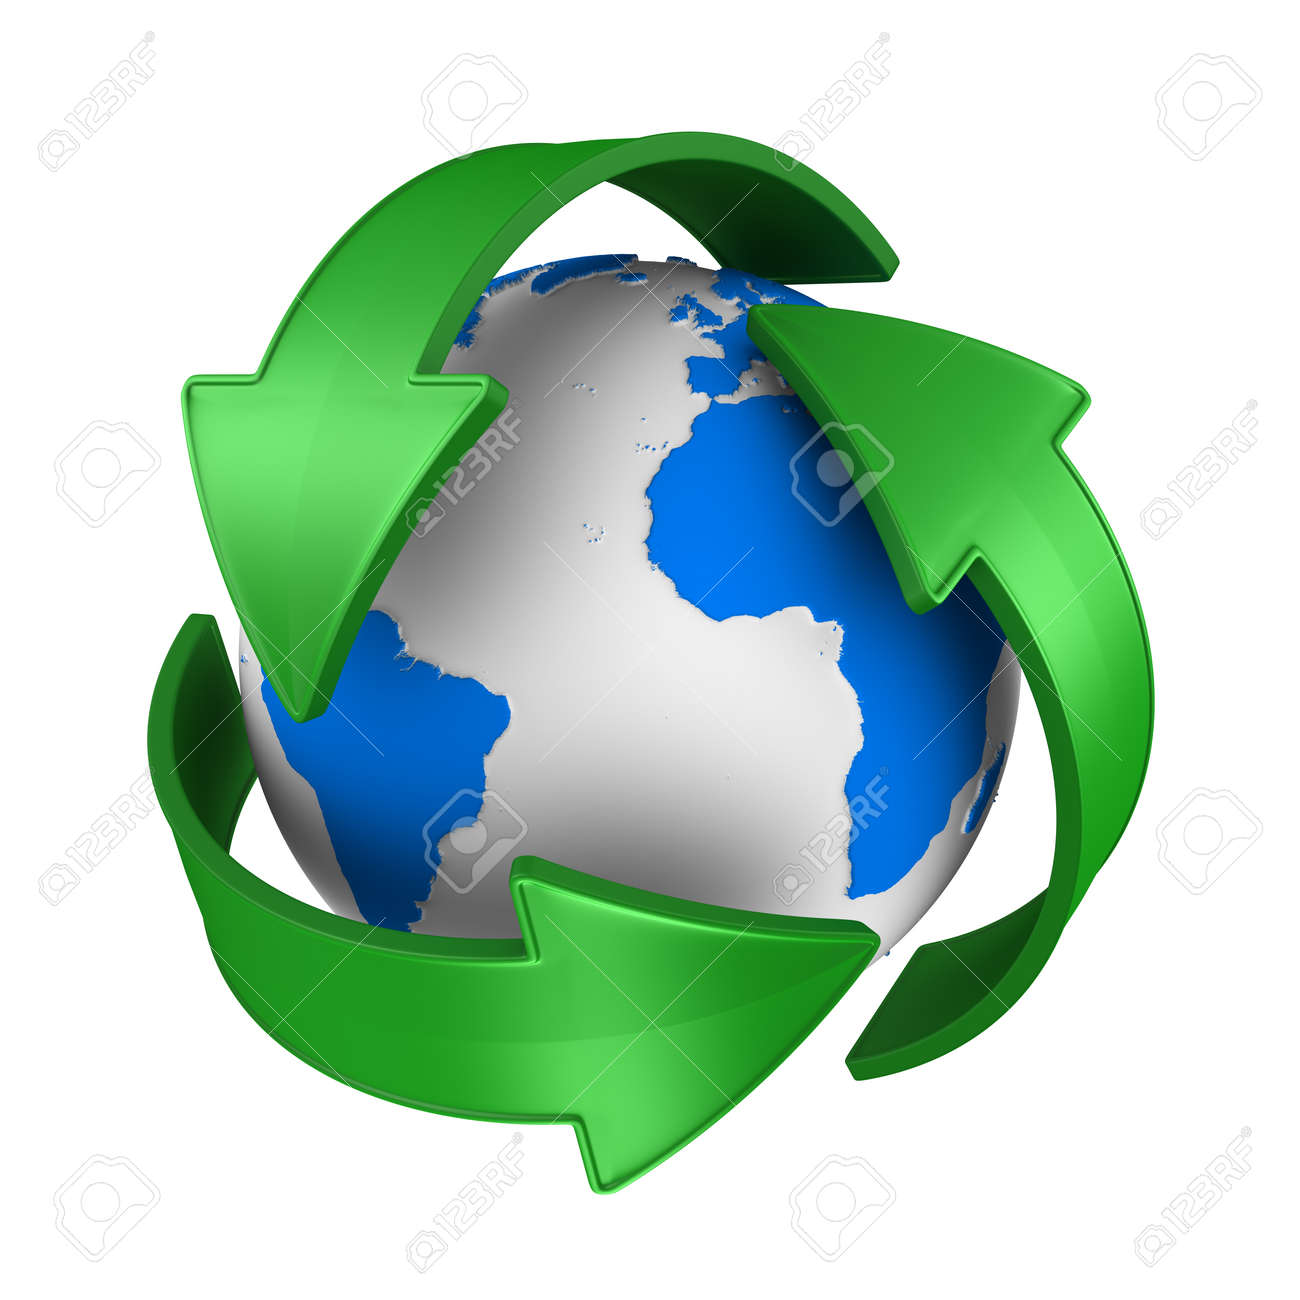 sign recycled and globe on white background. Isolated 3D illustration - 166236985